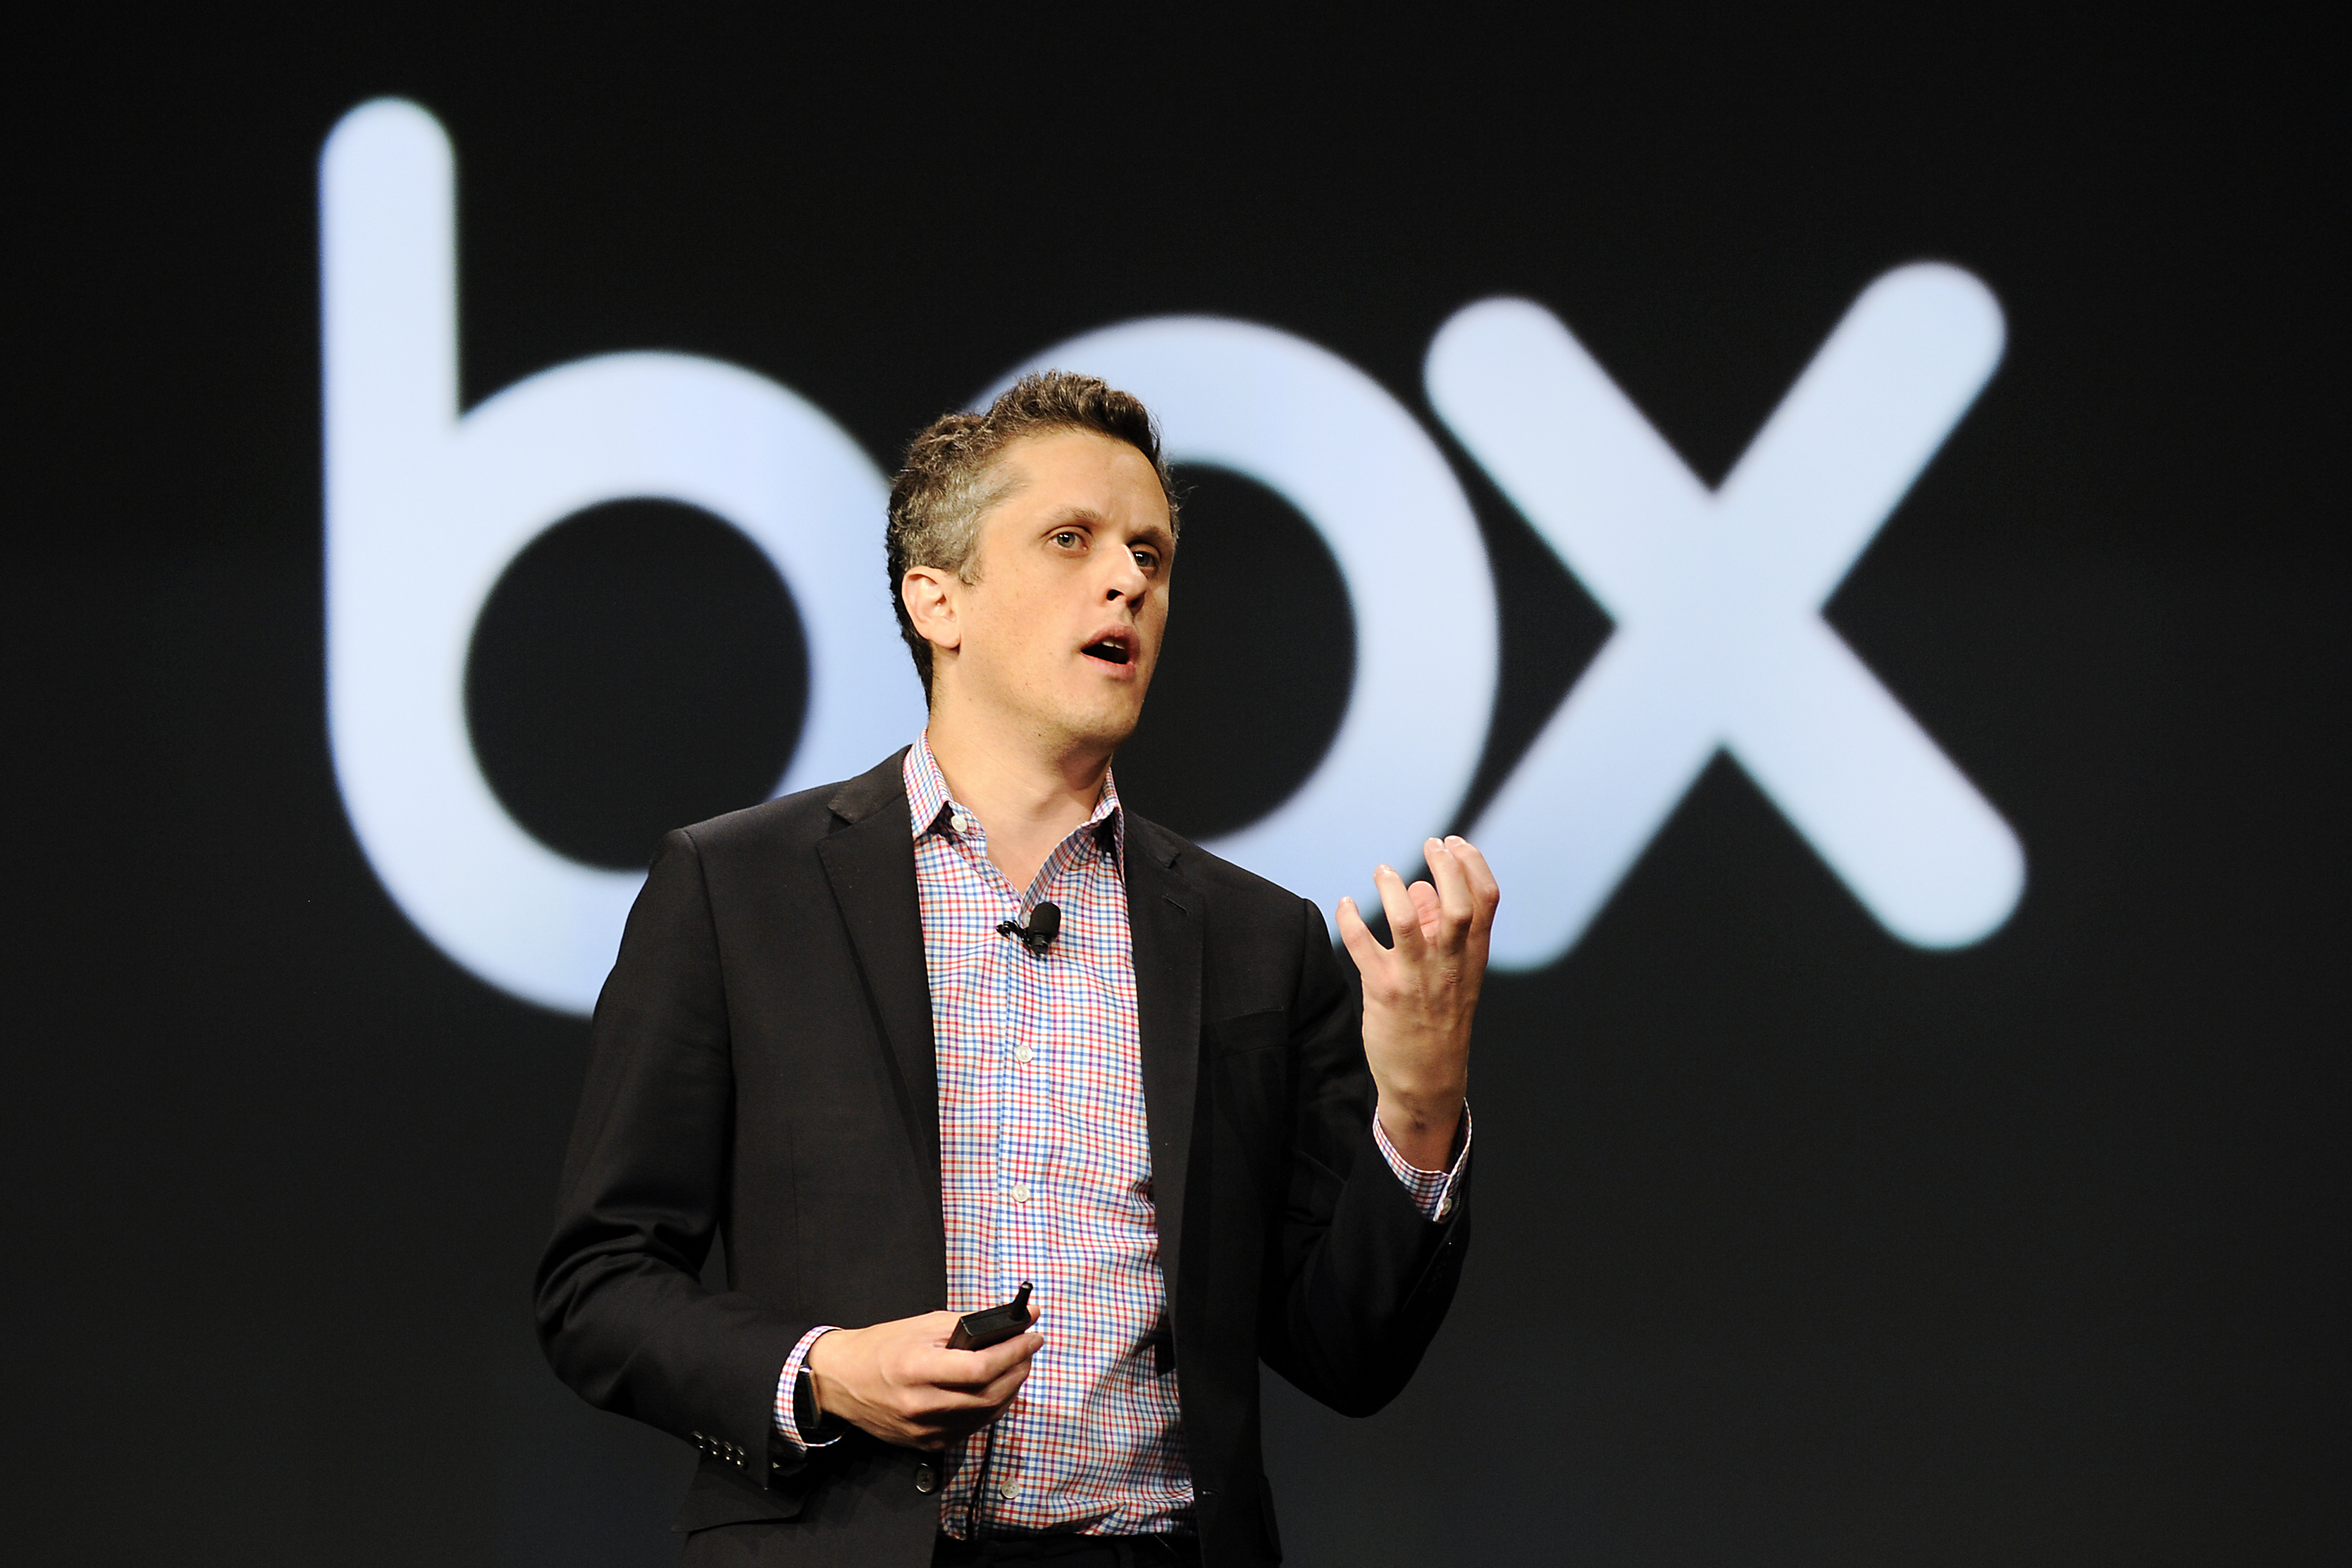 Key Speakers At The BoxWorks 2015 Conference